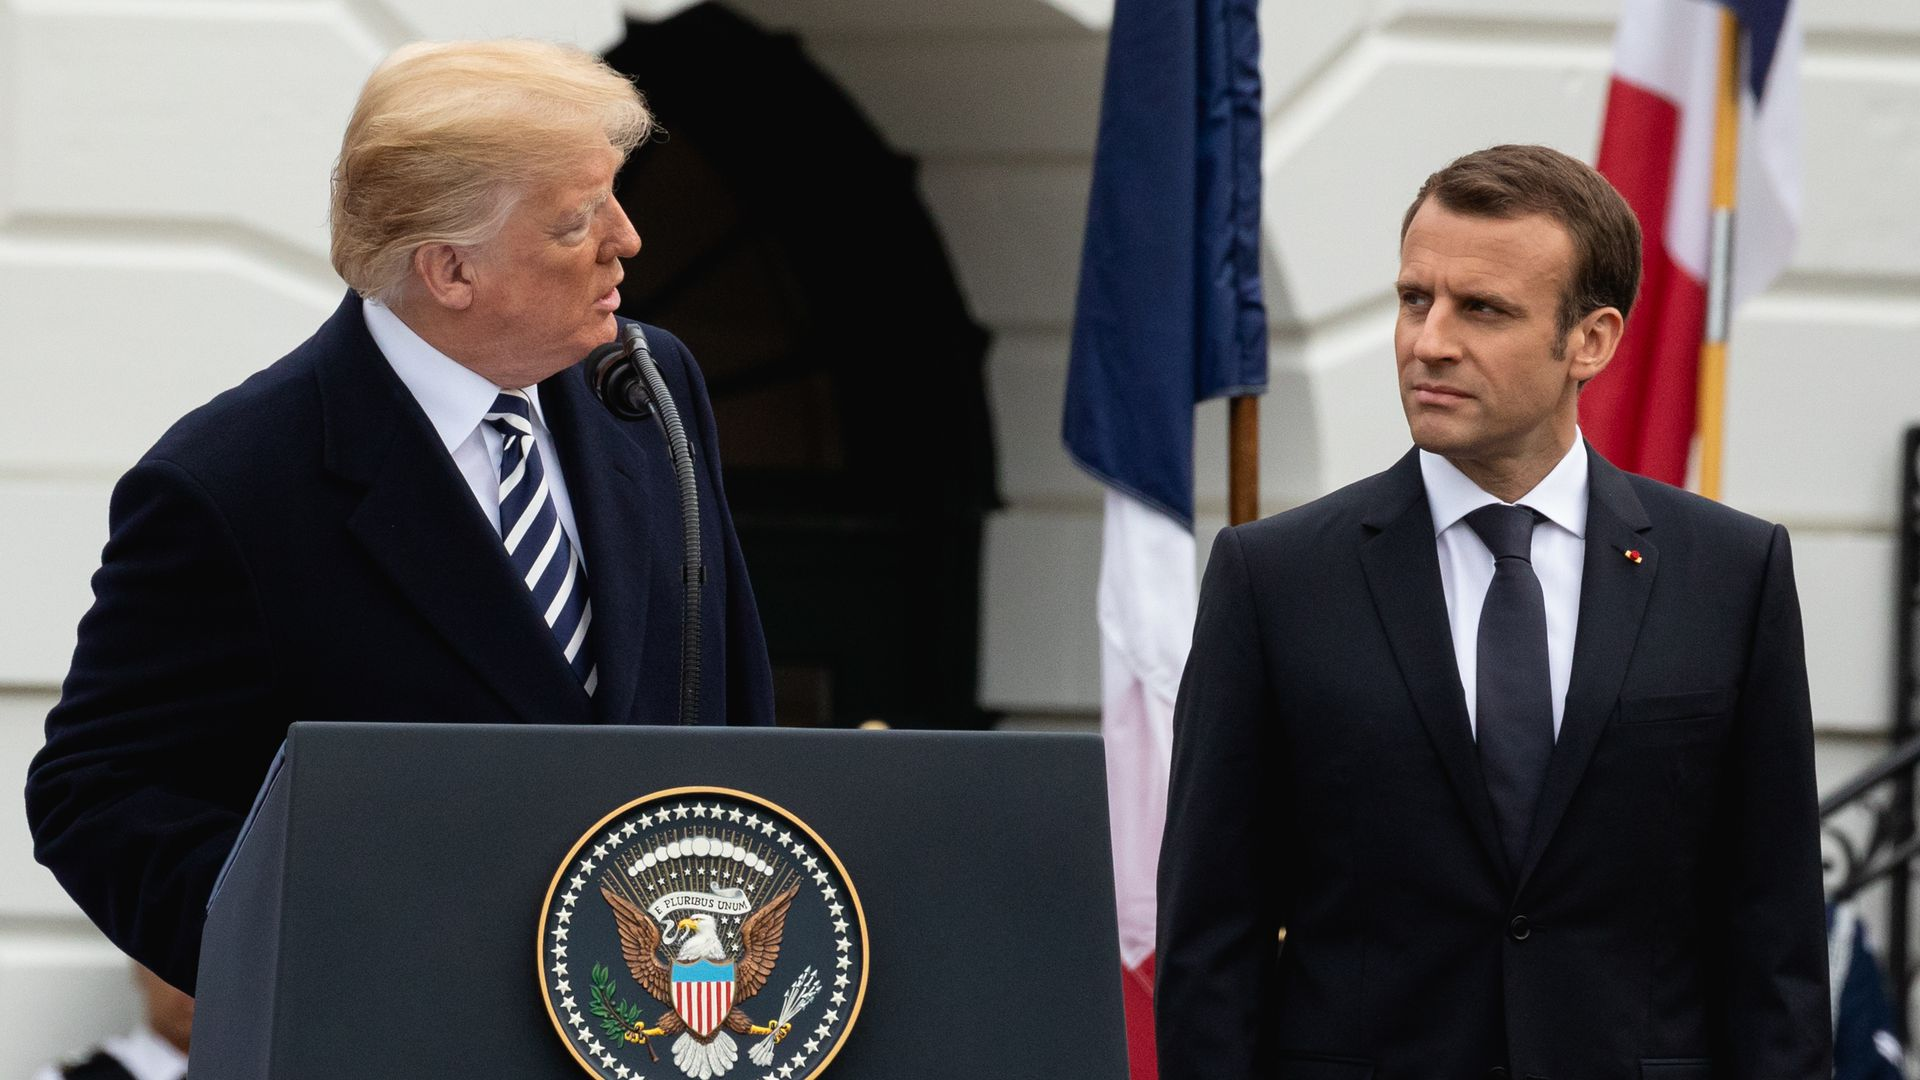 Emmanuel Macron at an event with Trump